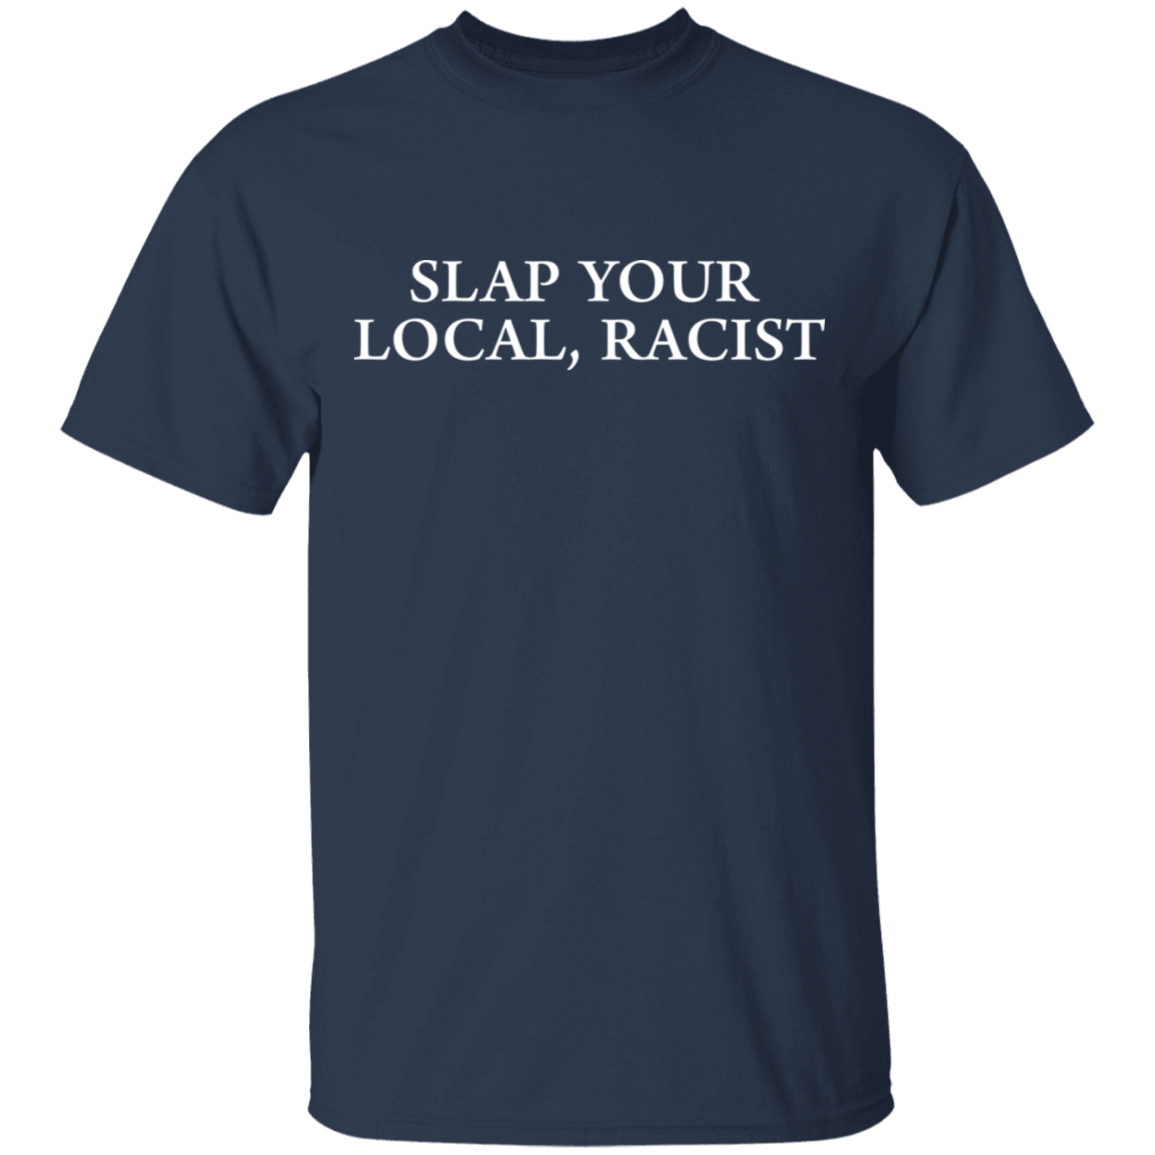 Slap Your Local Racist T-Shirts, Hoodies 22-111-80162947-250 - Tee Ript